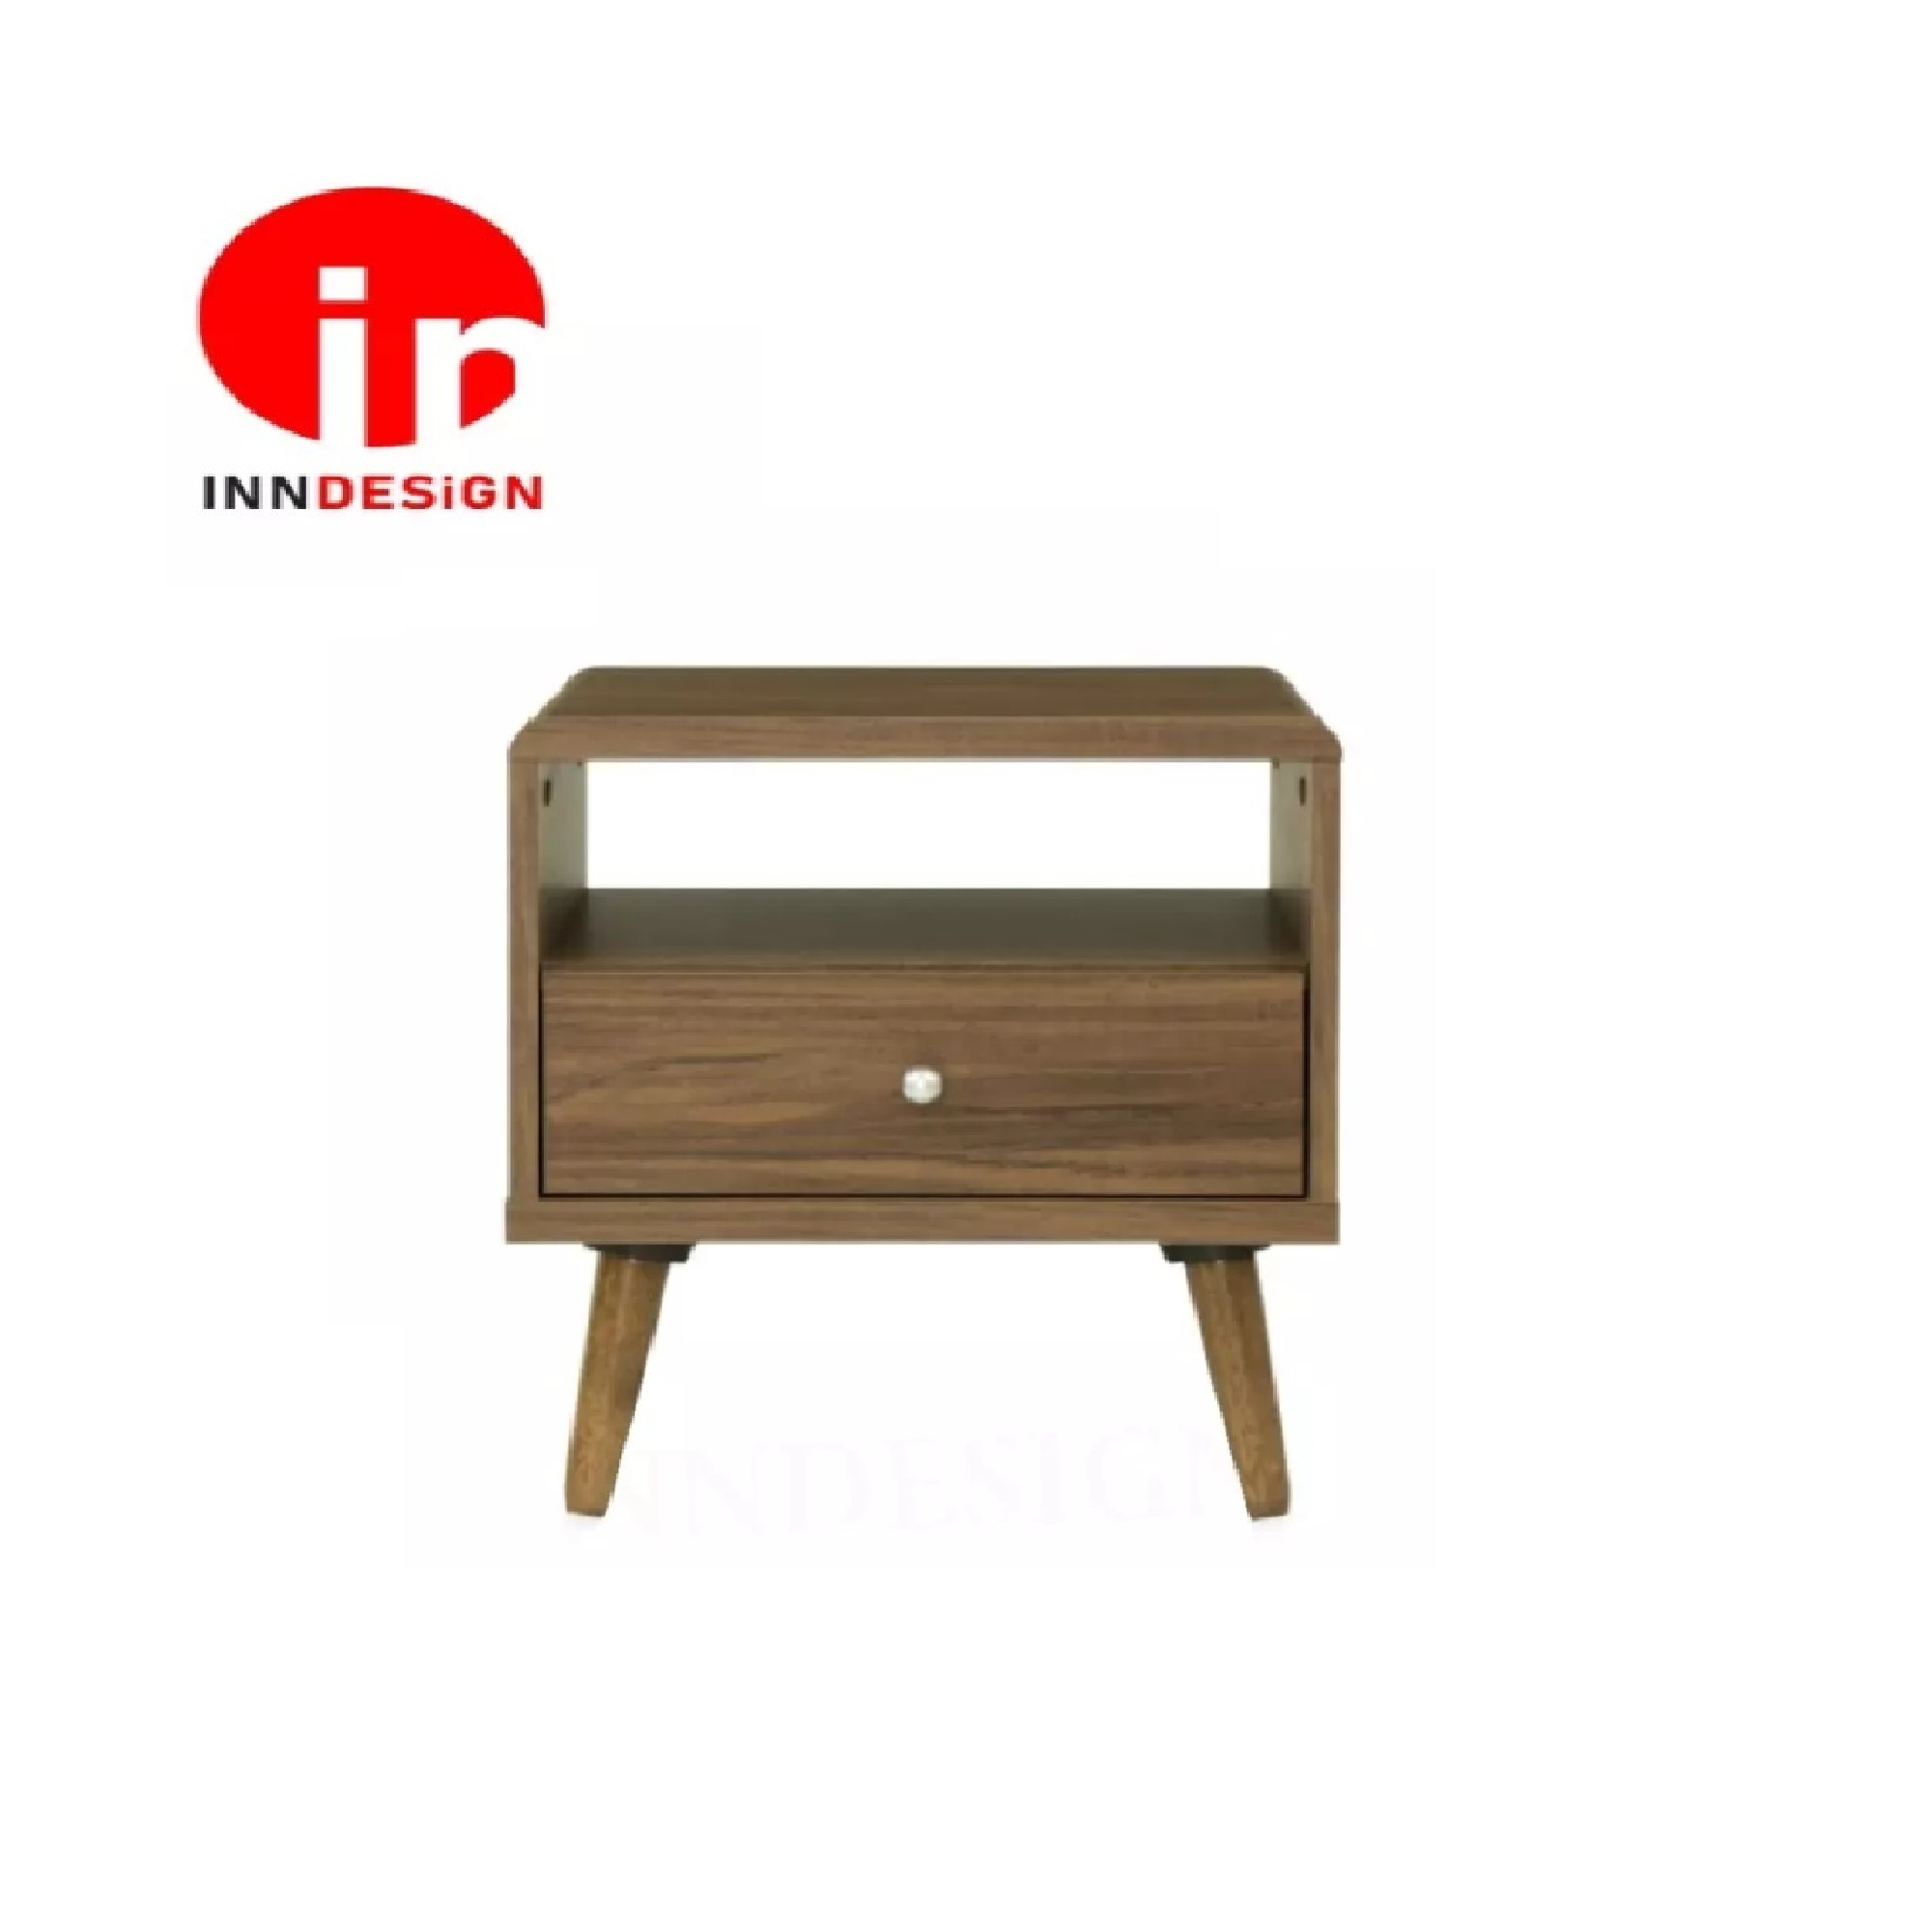 Berline Rounded Edge Side Table / Coffee Table With Solid Wood Leg (Free Delivery and Installation)